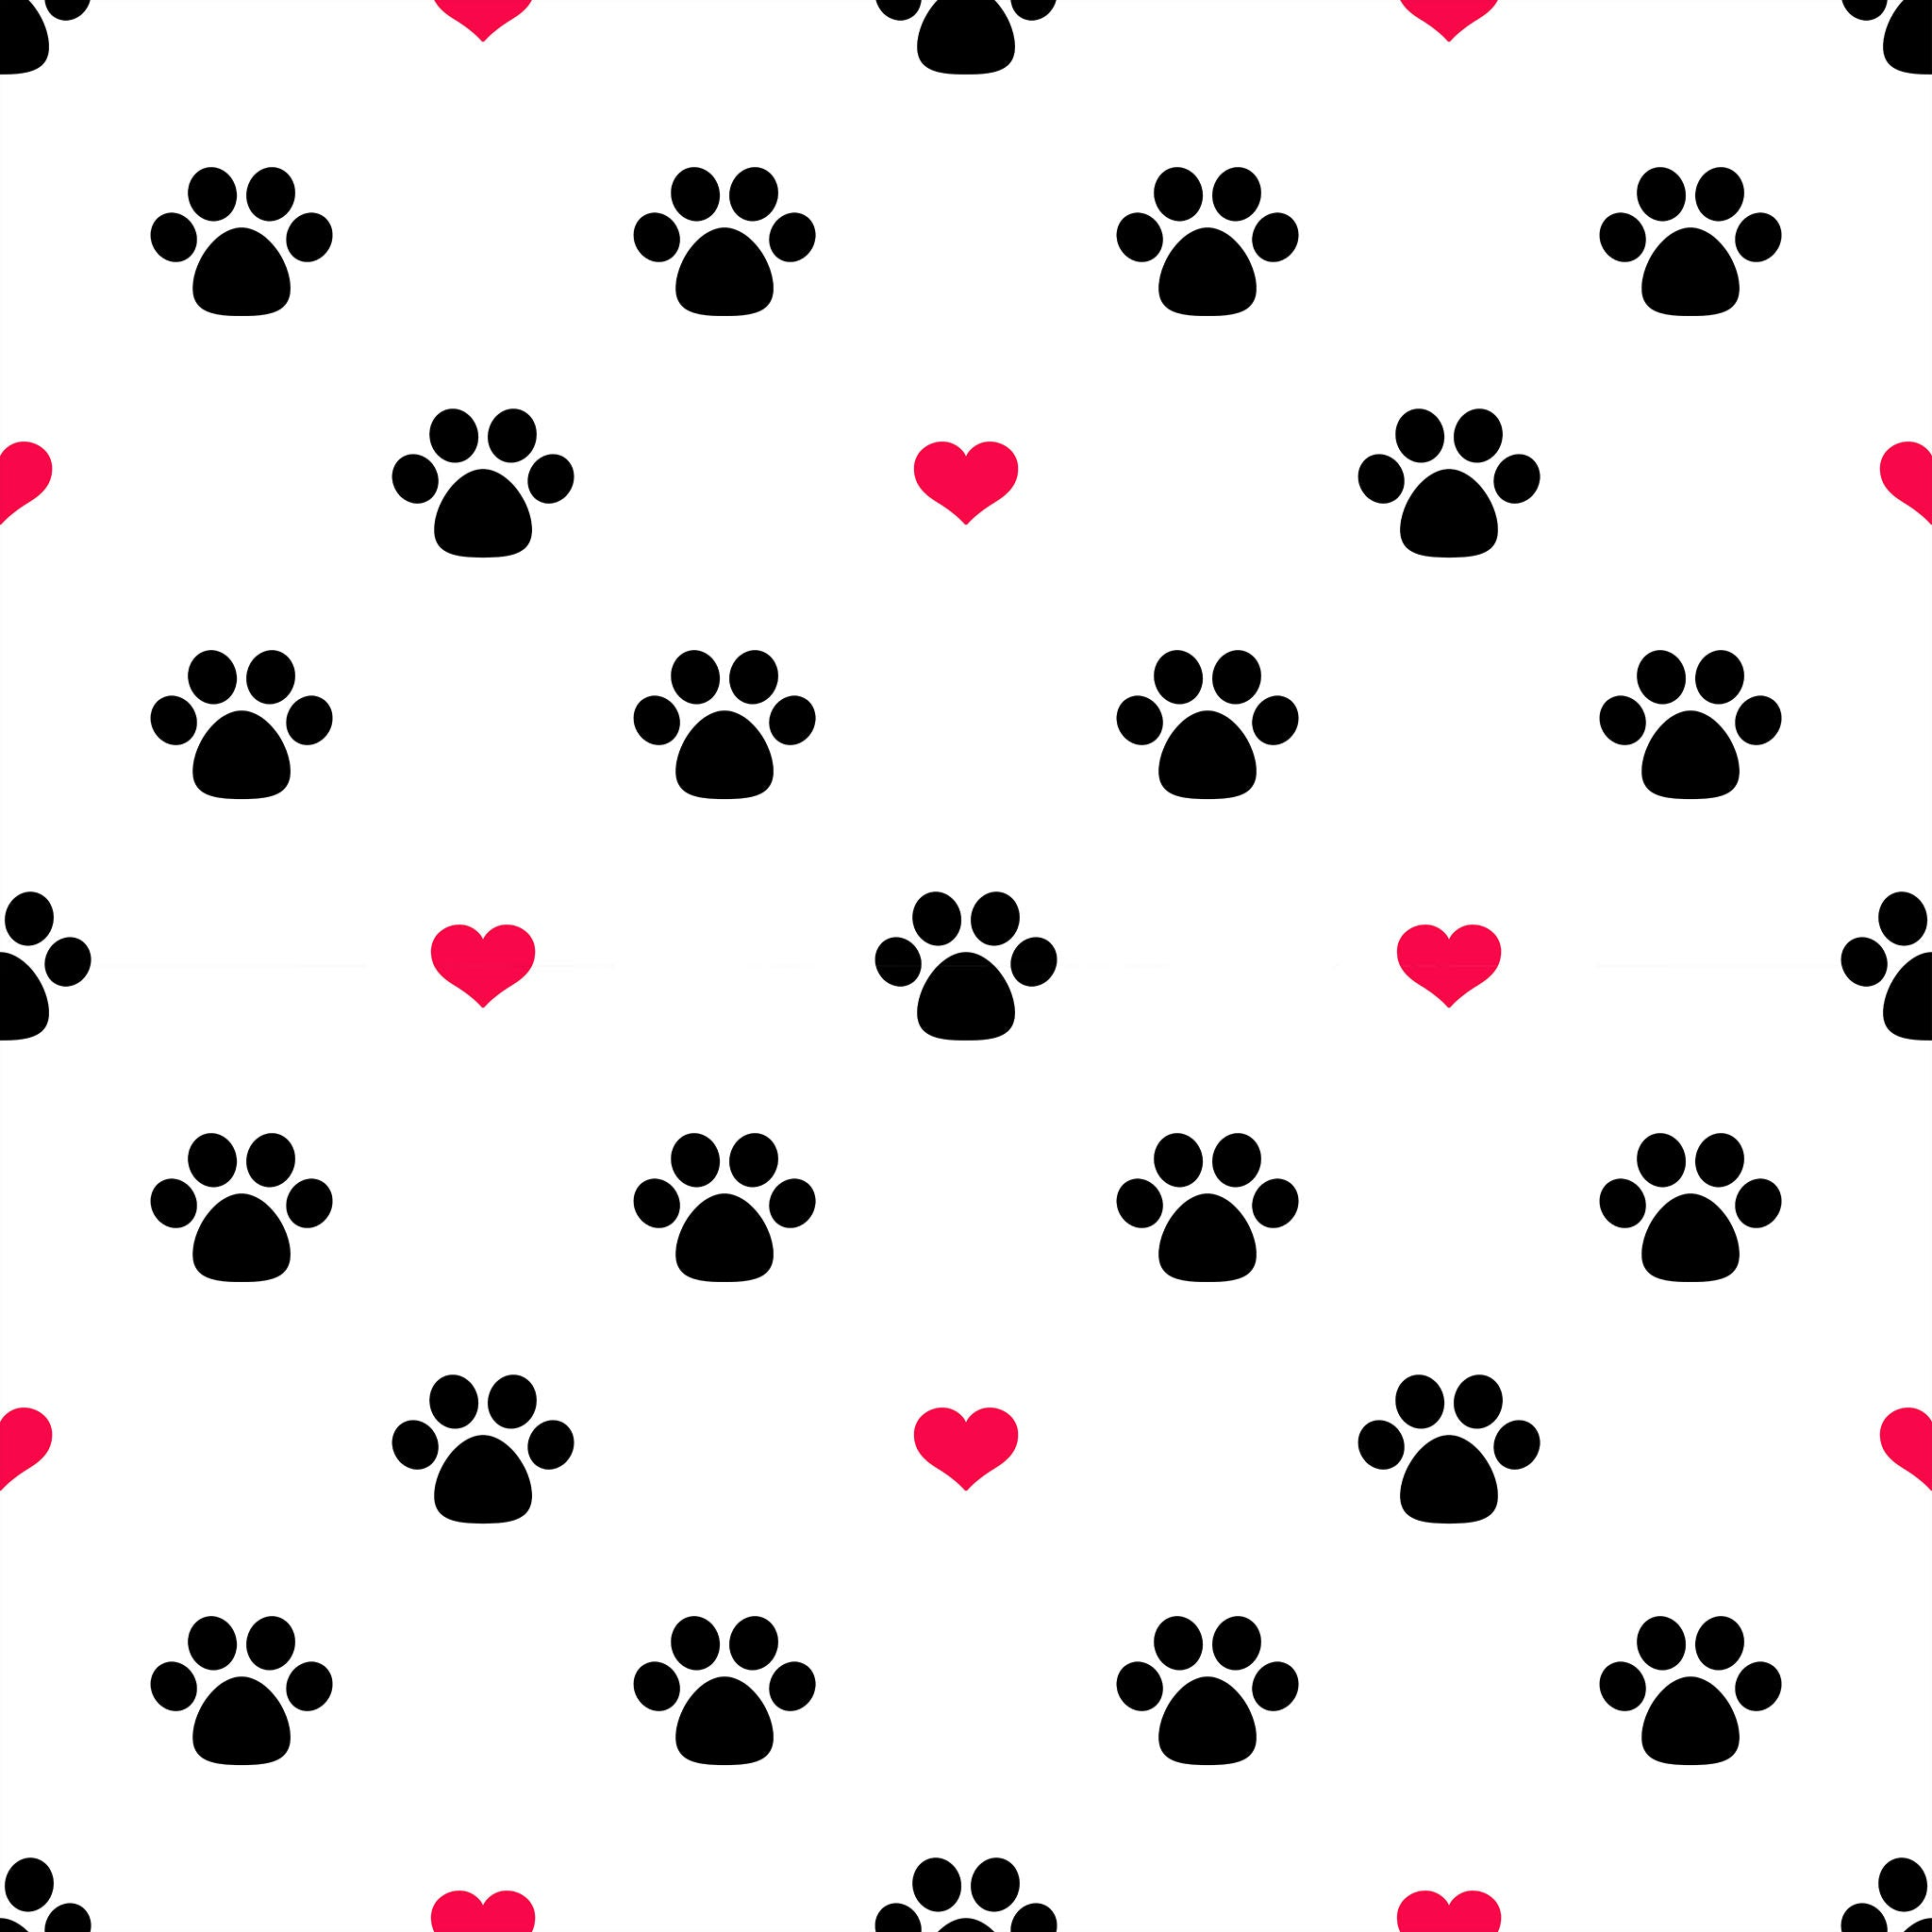 Paws & Hearts